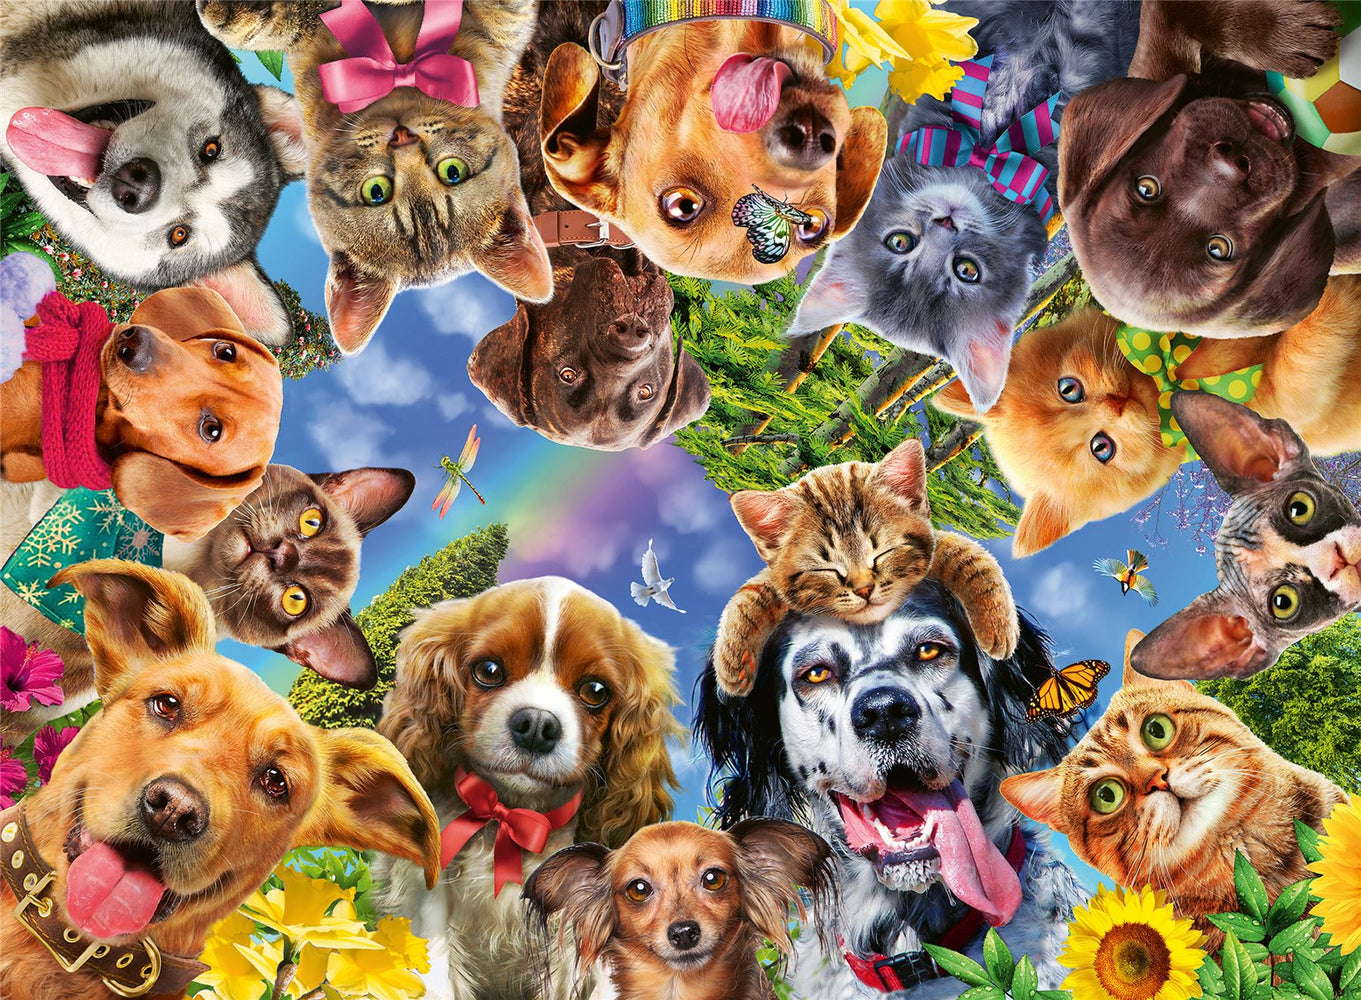 Ravensburger Animal Selfies, 500 Piece Jigsaw Puzzle